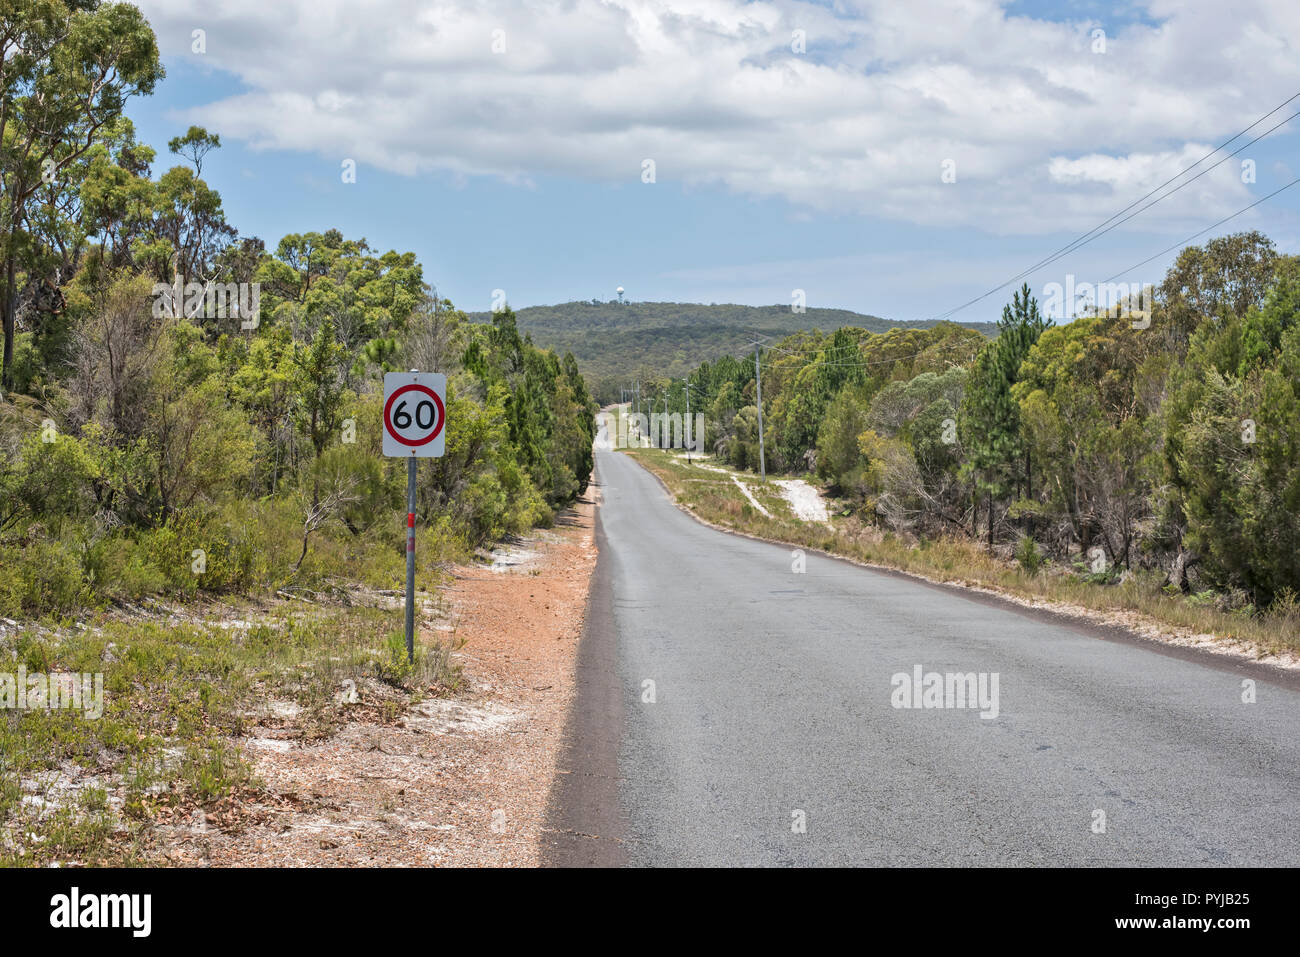 Bulwark Blue Lagoon Road and 60 kilometres speed sign, Moreton Island, Queensland, Australia. - Stock Image